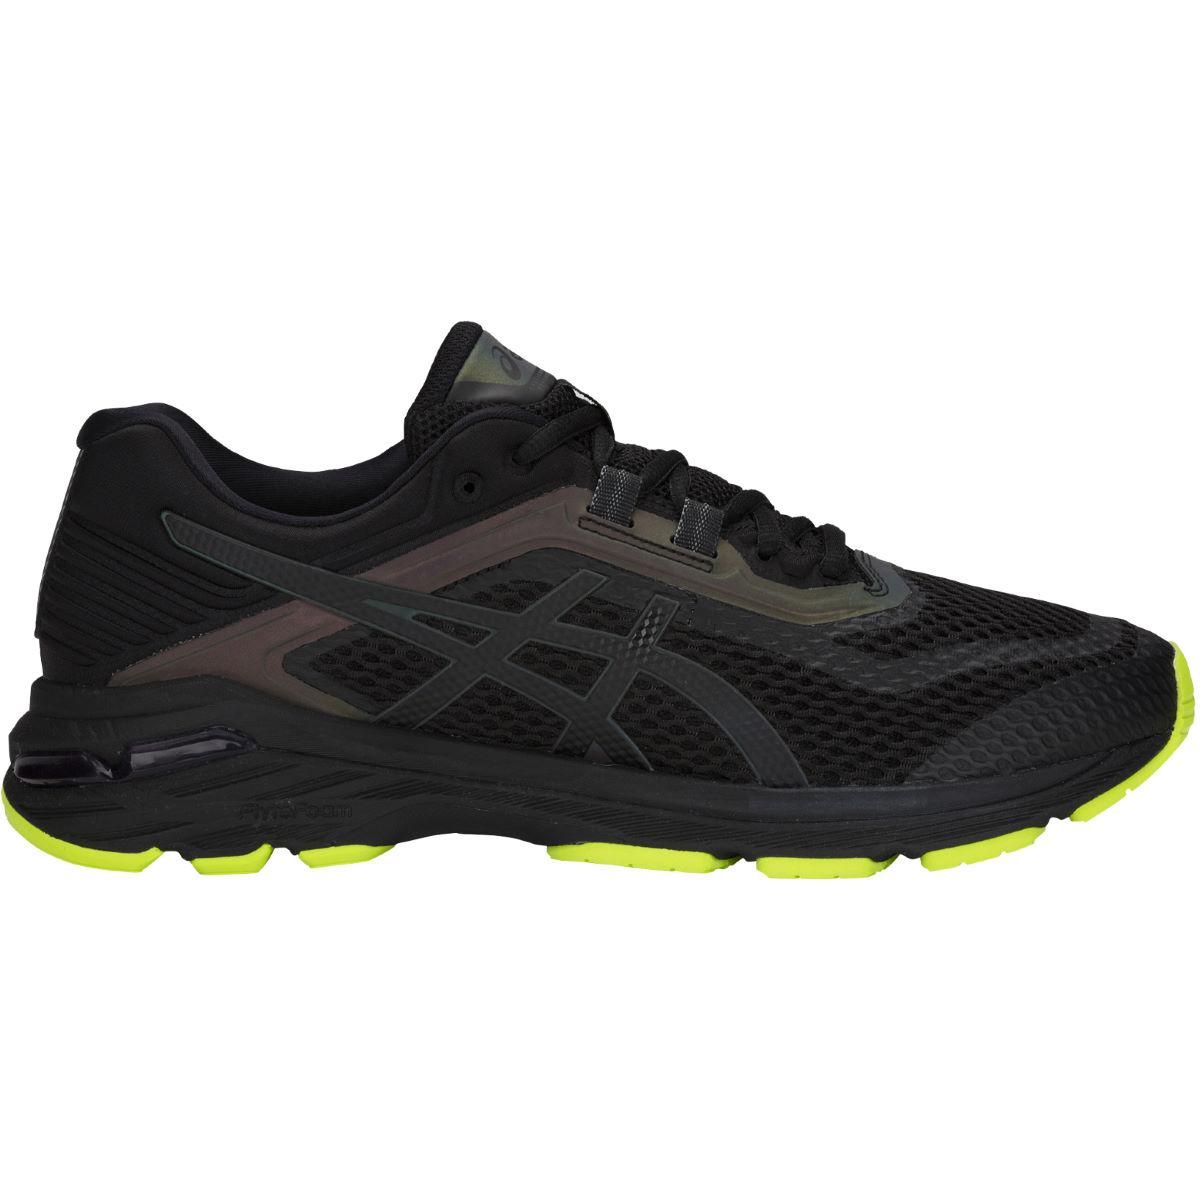 Asics GT-2000 6 Liteshow shoes - Running shoes